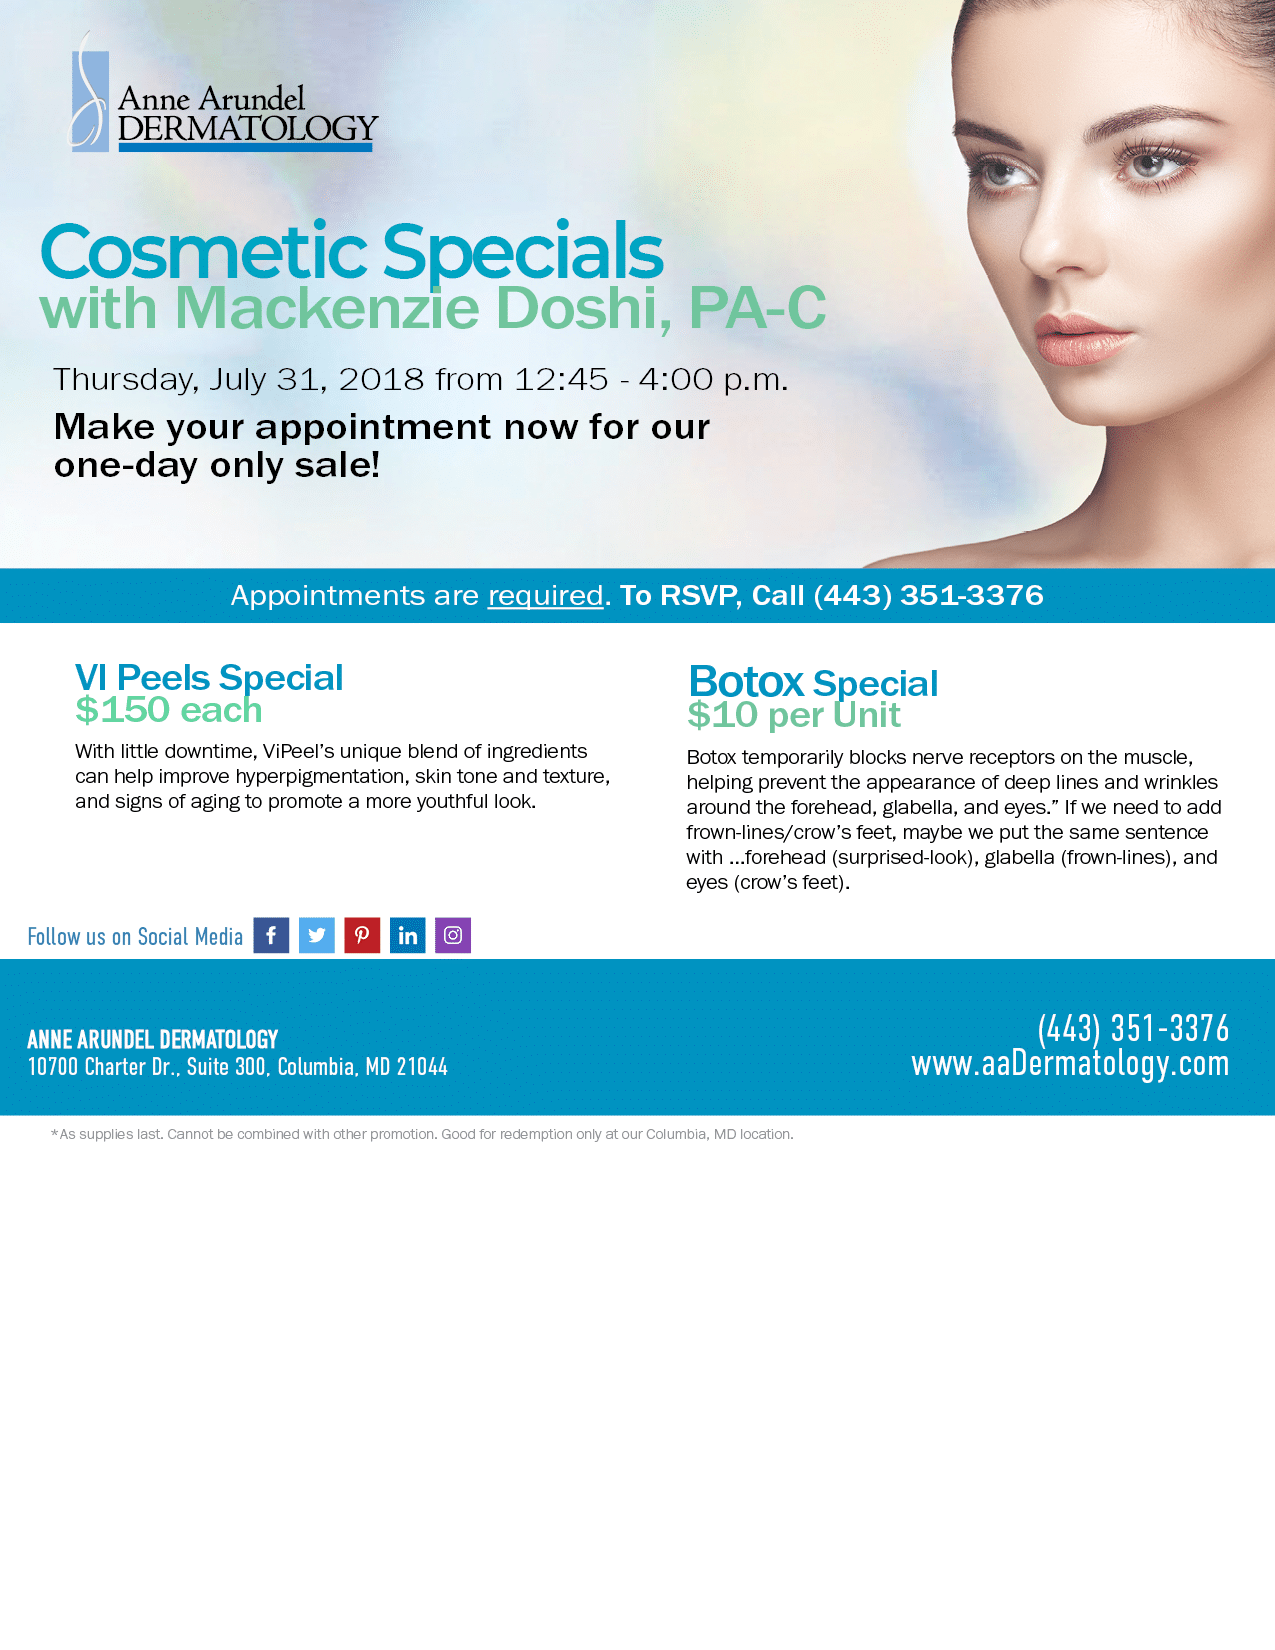 July 31 Special Pricing in Columbia, MD